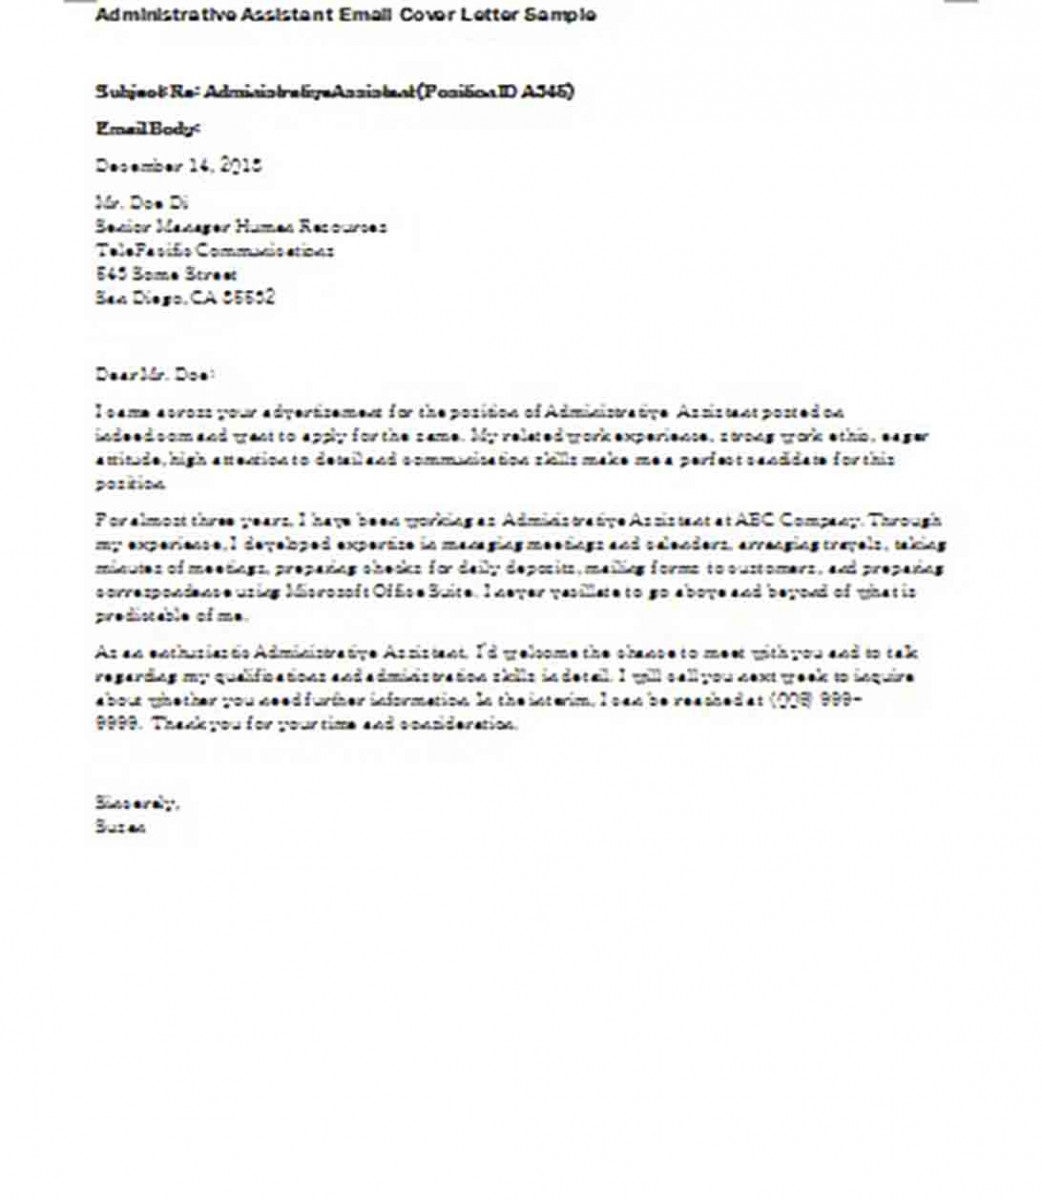 dministrative Assistant Email Cover Letter Sample